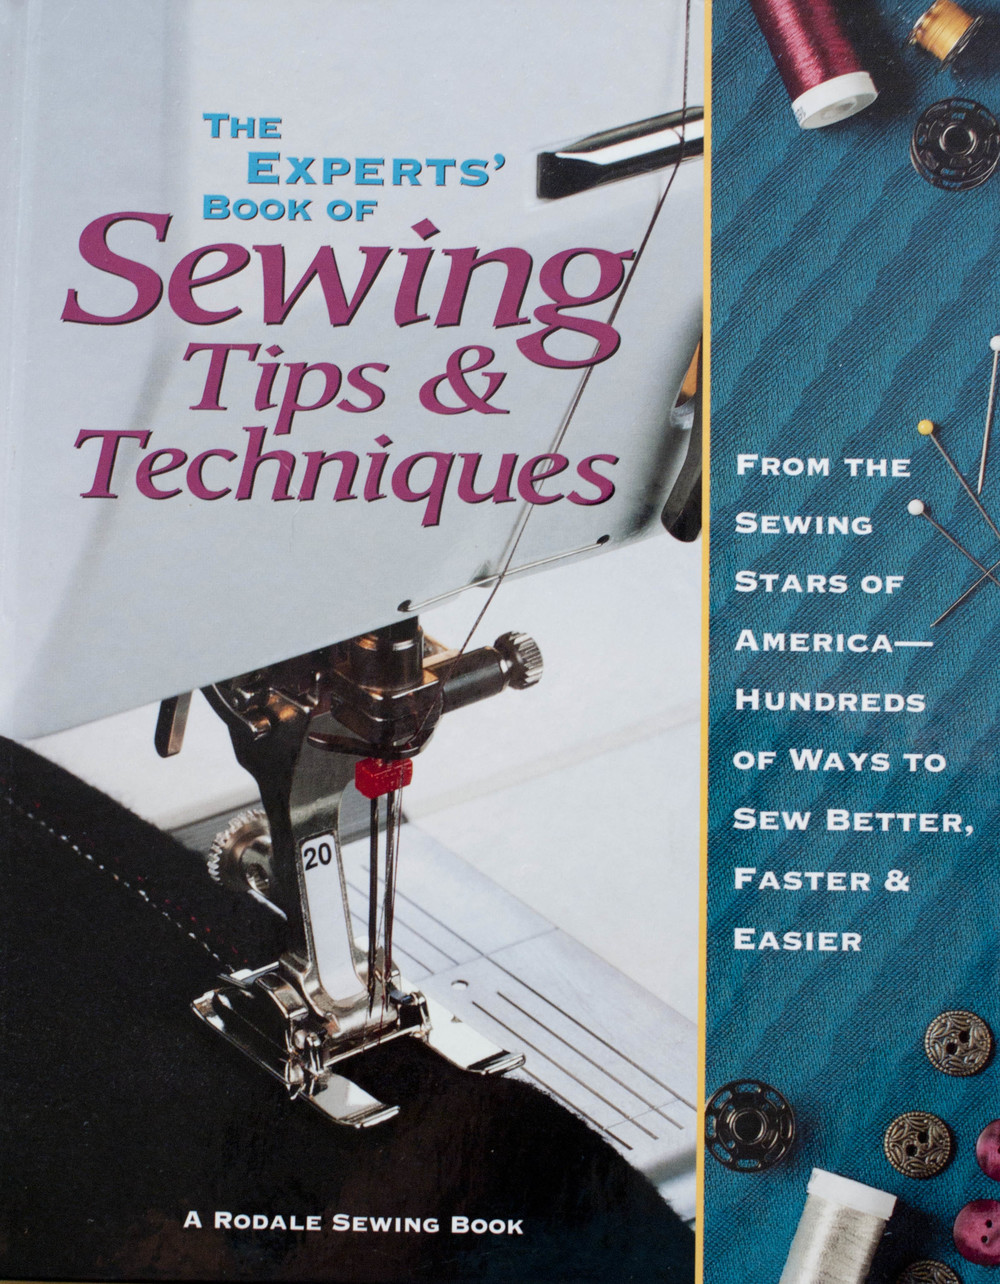 Sewing Tips & Techniques.jpg